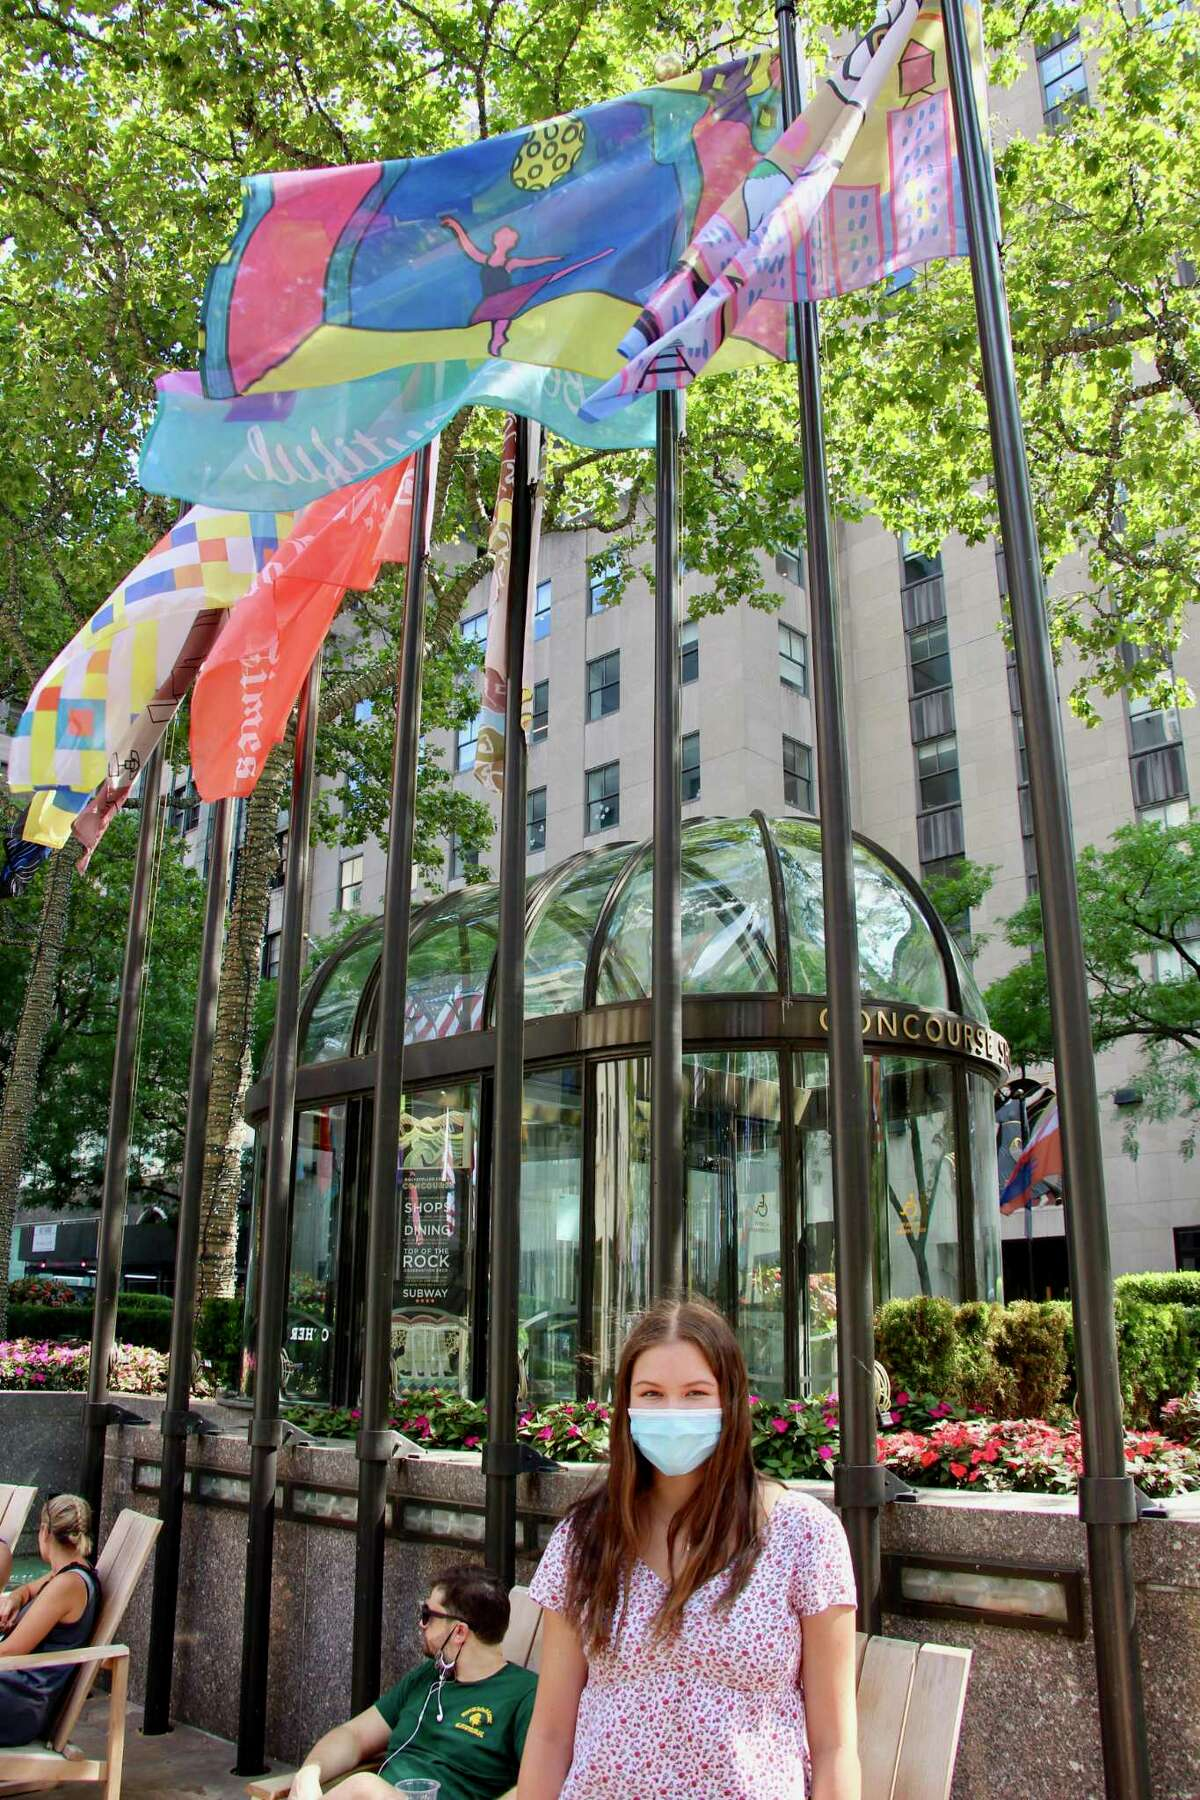 Emily Twitchell of New Canaan, who will be a junior at Greens Farms Academy in Westport, visited Rockefeller Center recently to see a flag she designed that was chosen for an exhibit there.